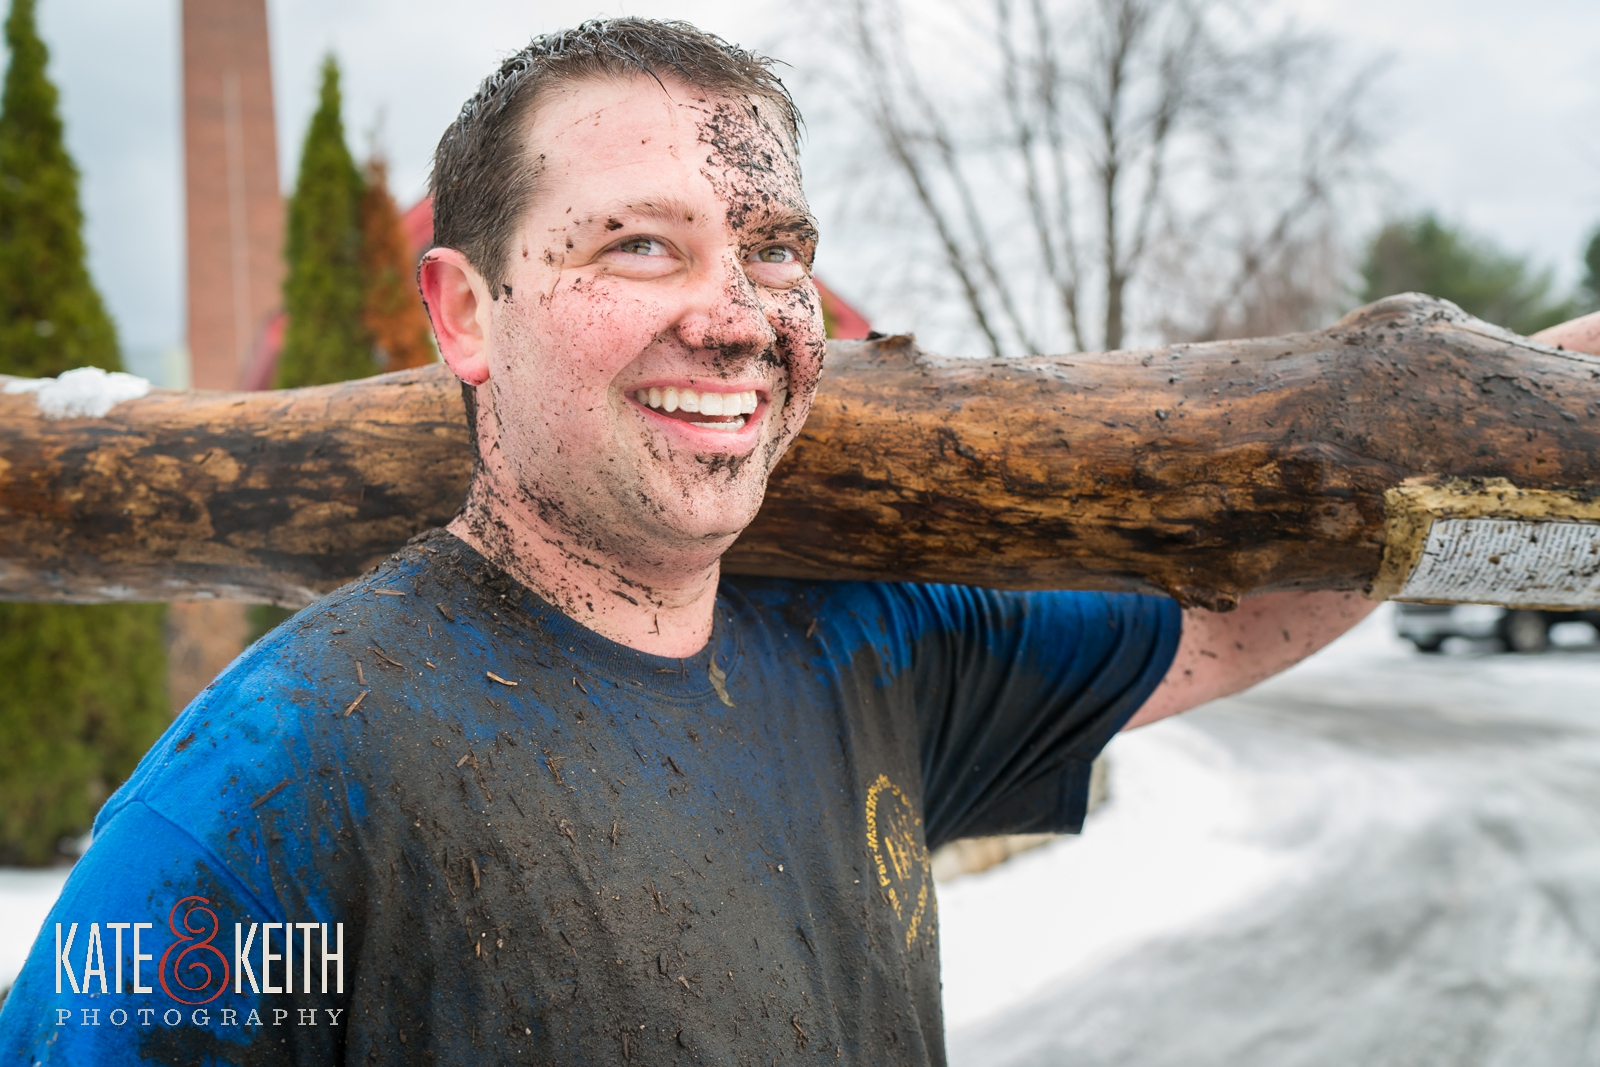 Barn on the Pemi, snowy wedding, muddy groom, active groom, getting ready, outdoorsy groom, fun couple, family traditions